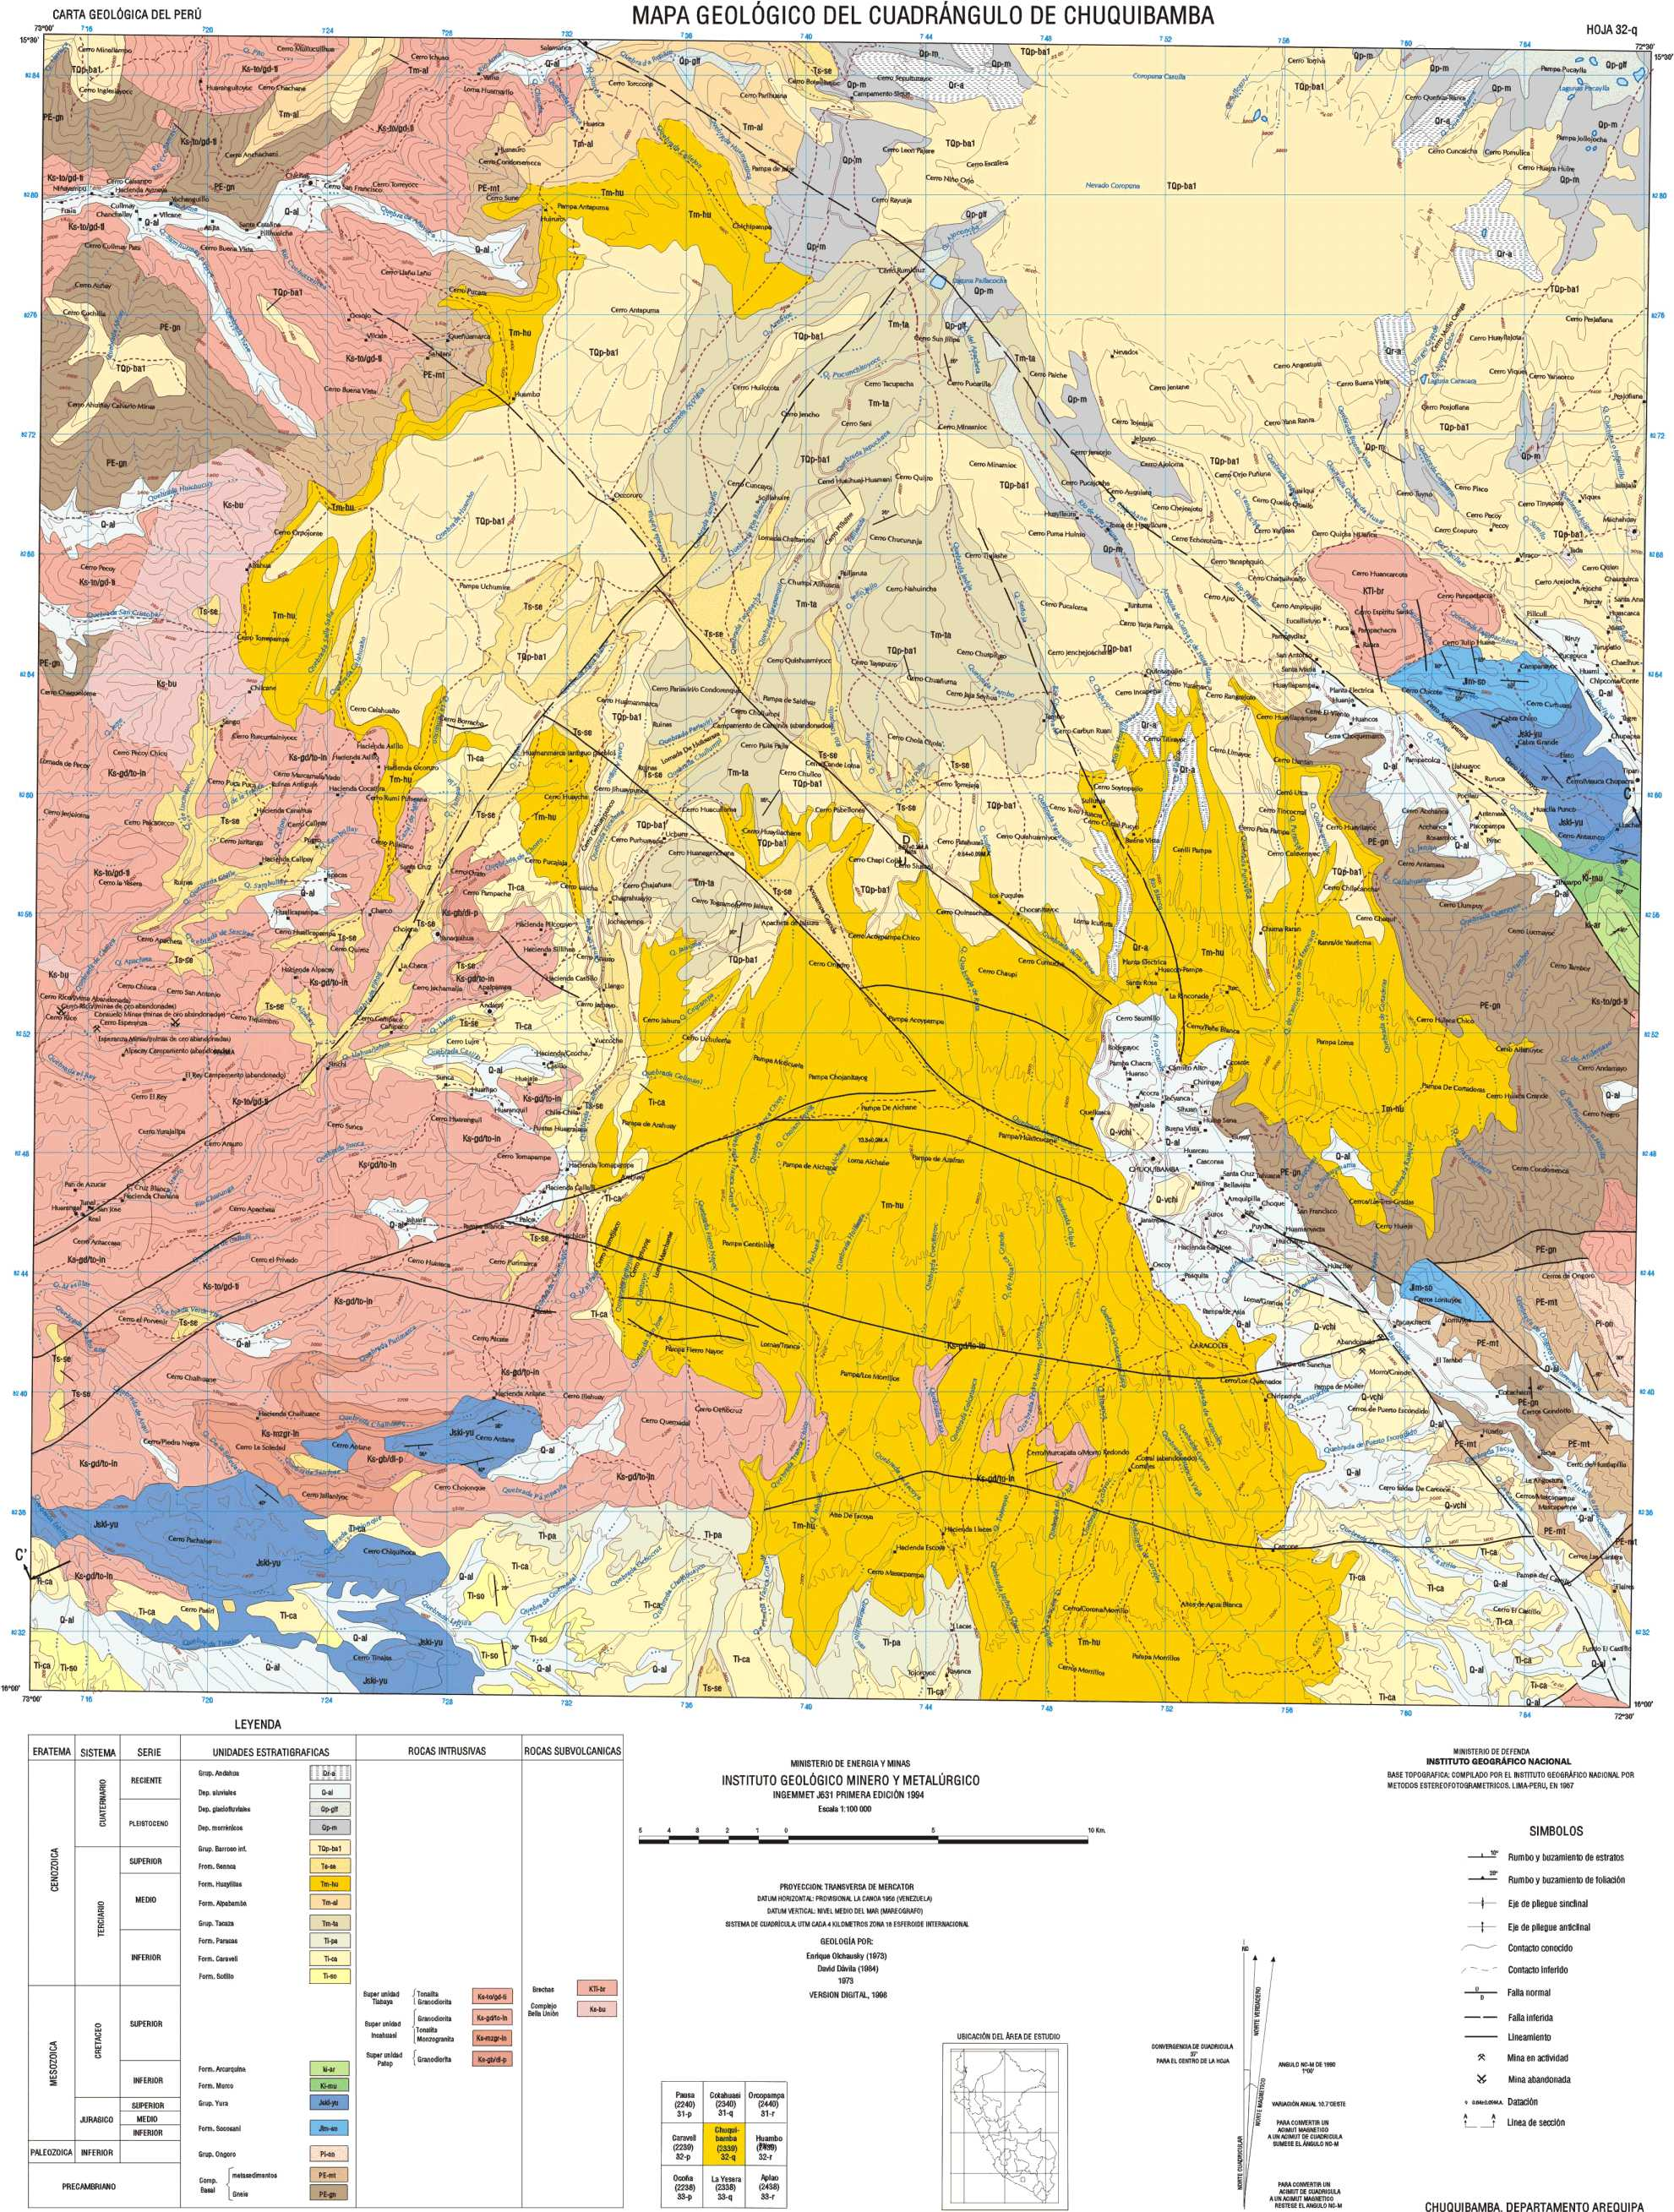 Geological Map of Chuquibamba - Pampacolca